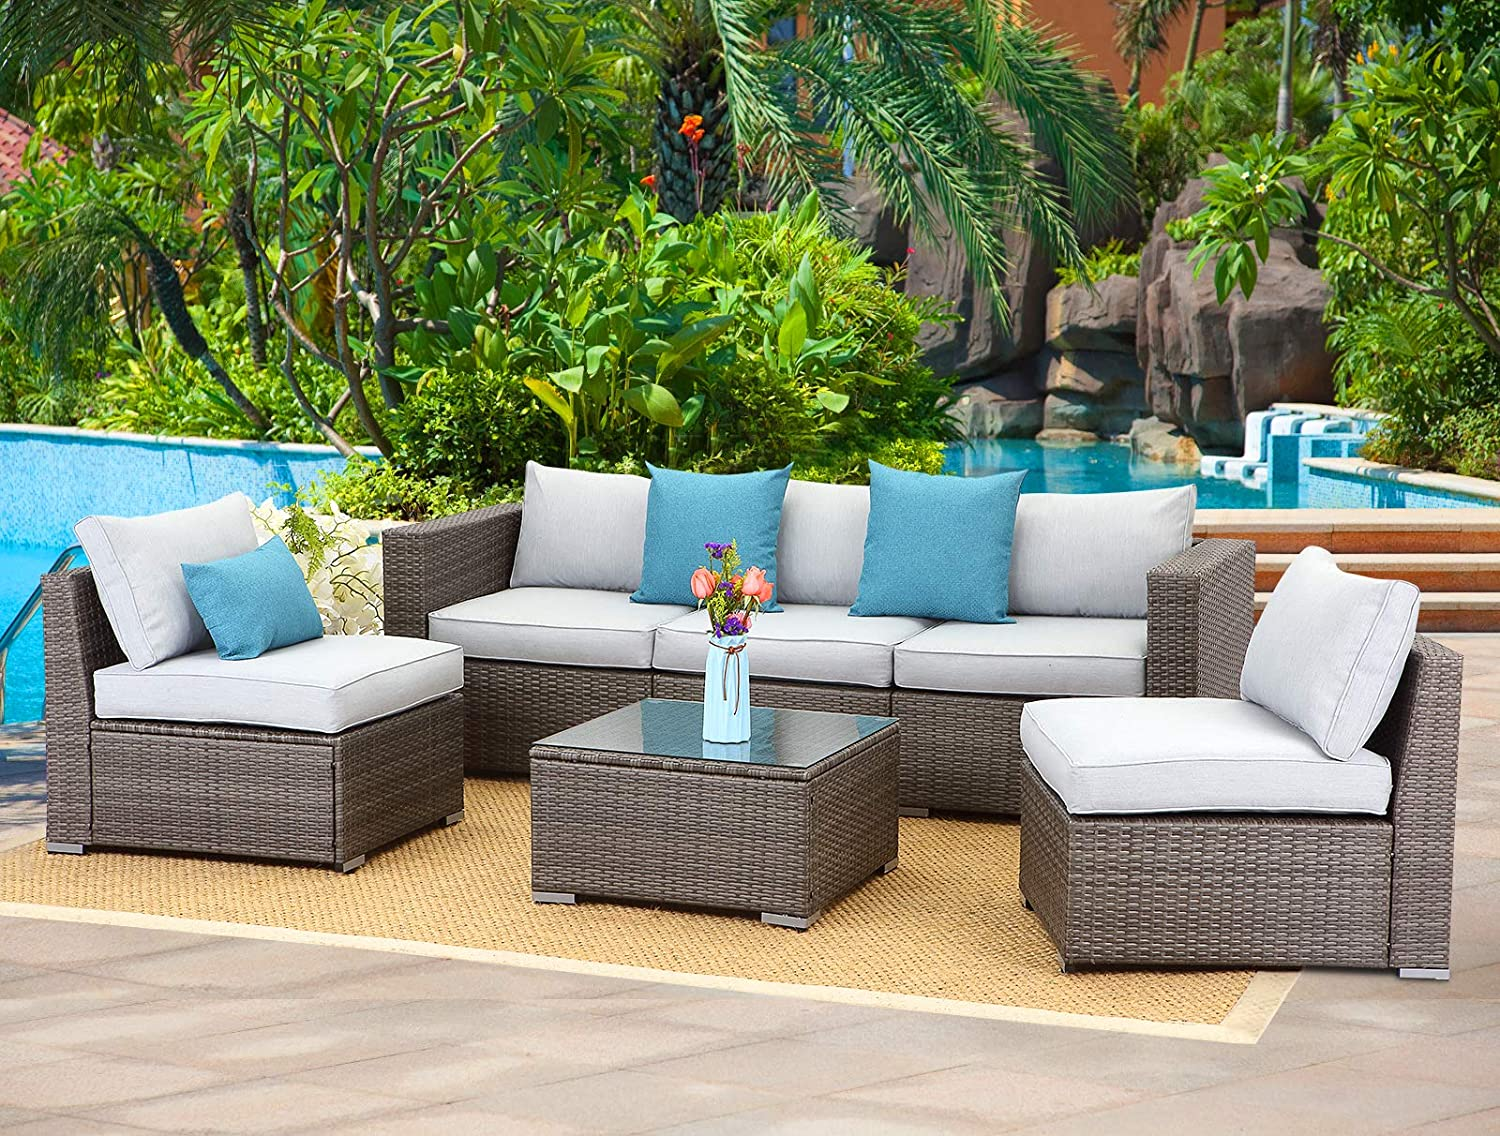 Wisteria Lane 6-Piece Outdoor Furniture Set Modular Wicker Patio Sectional Sofa Couch for Garden Backyard,Sophisticated Glass Coffee Table with Fabric Cushions,Upgrade Grey Cushion